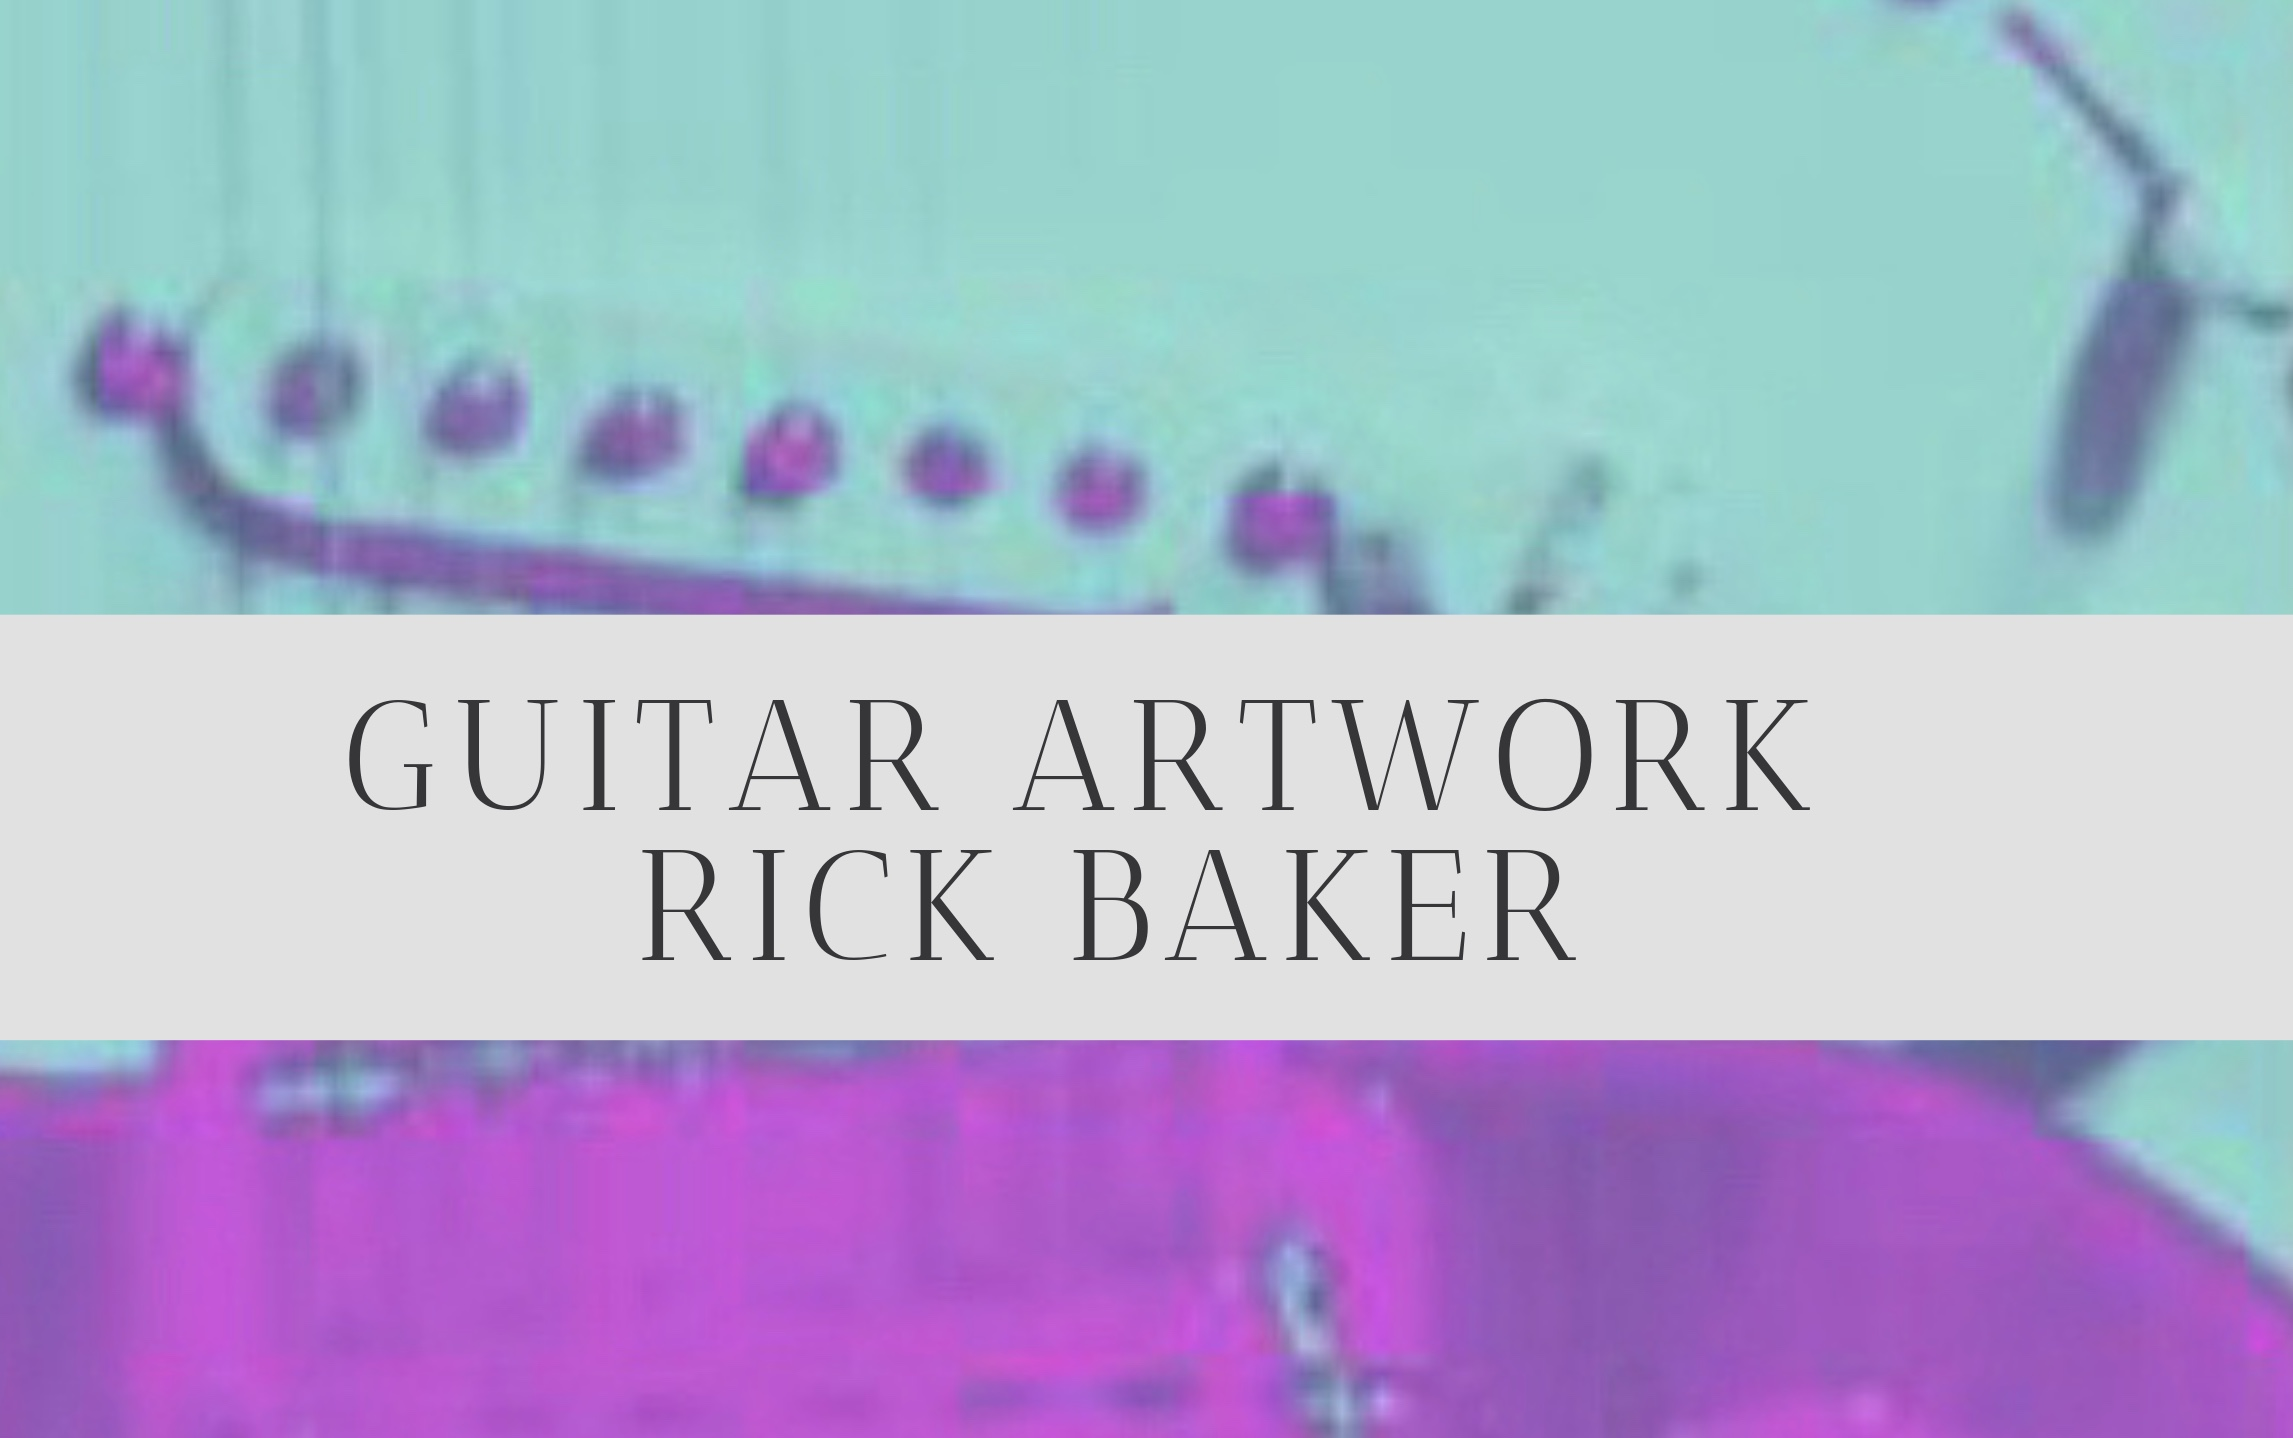 If you like guitars and cool art,  getcha some swag!